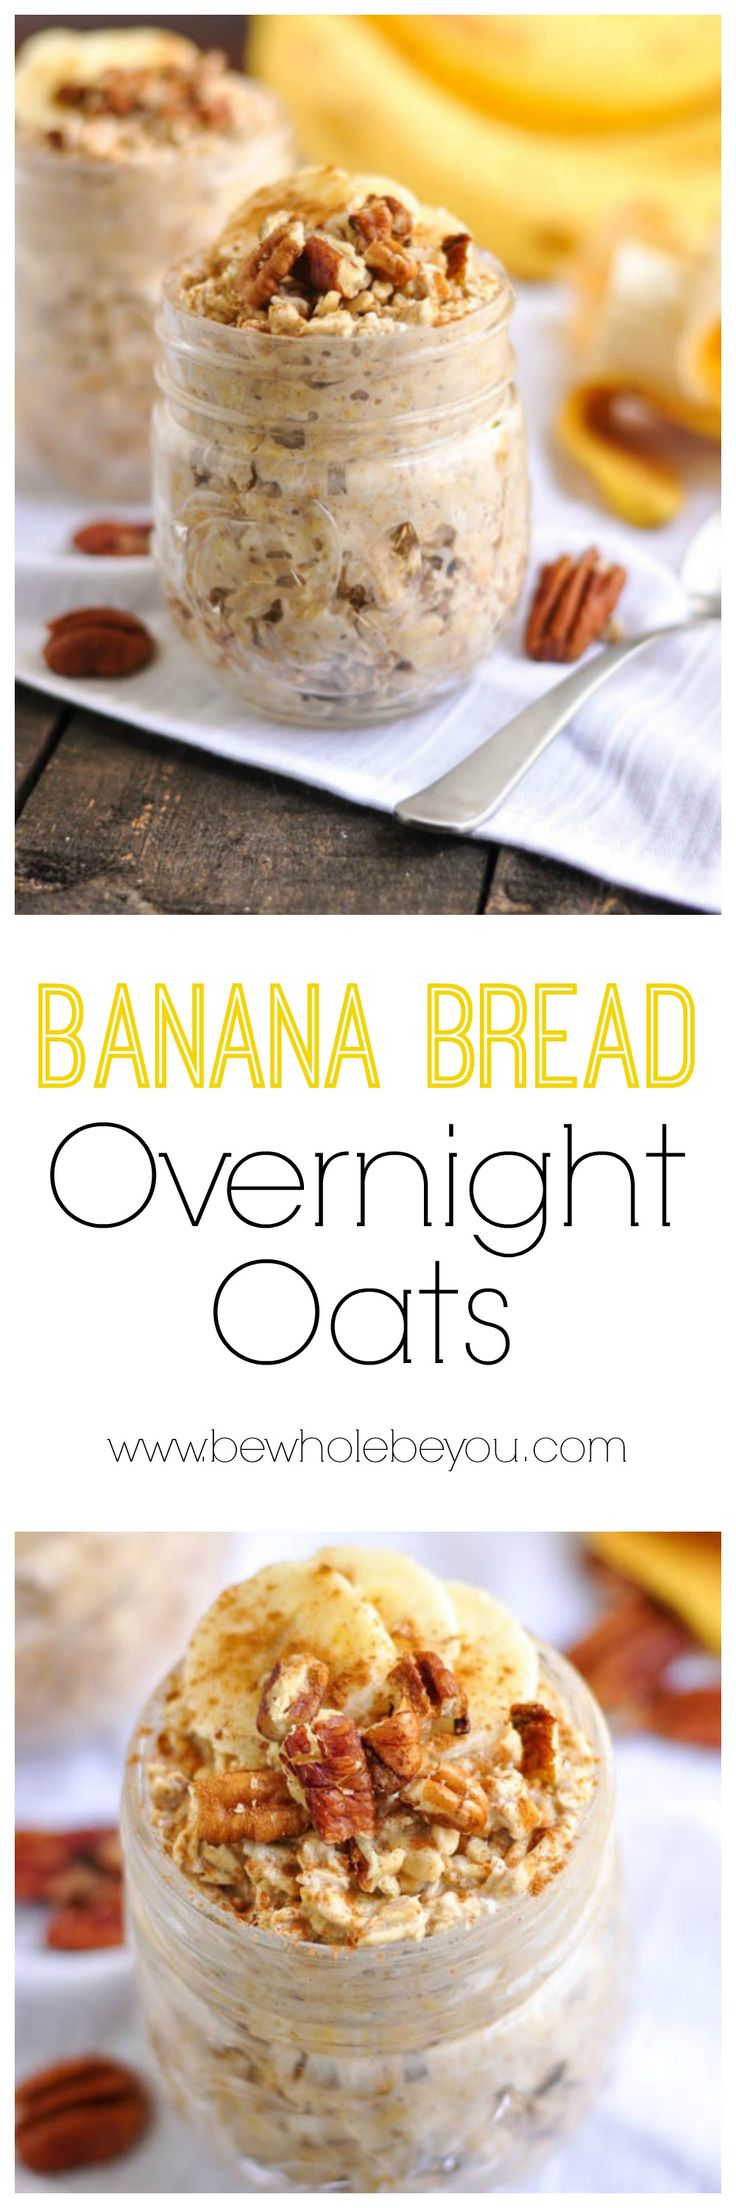 Banana Bread Overnight Oats. Be Whole. Be You.